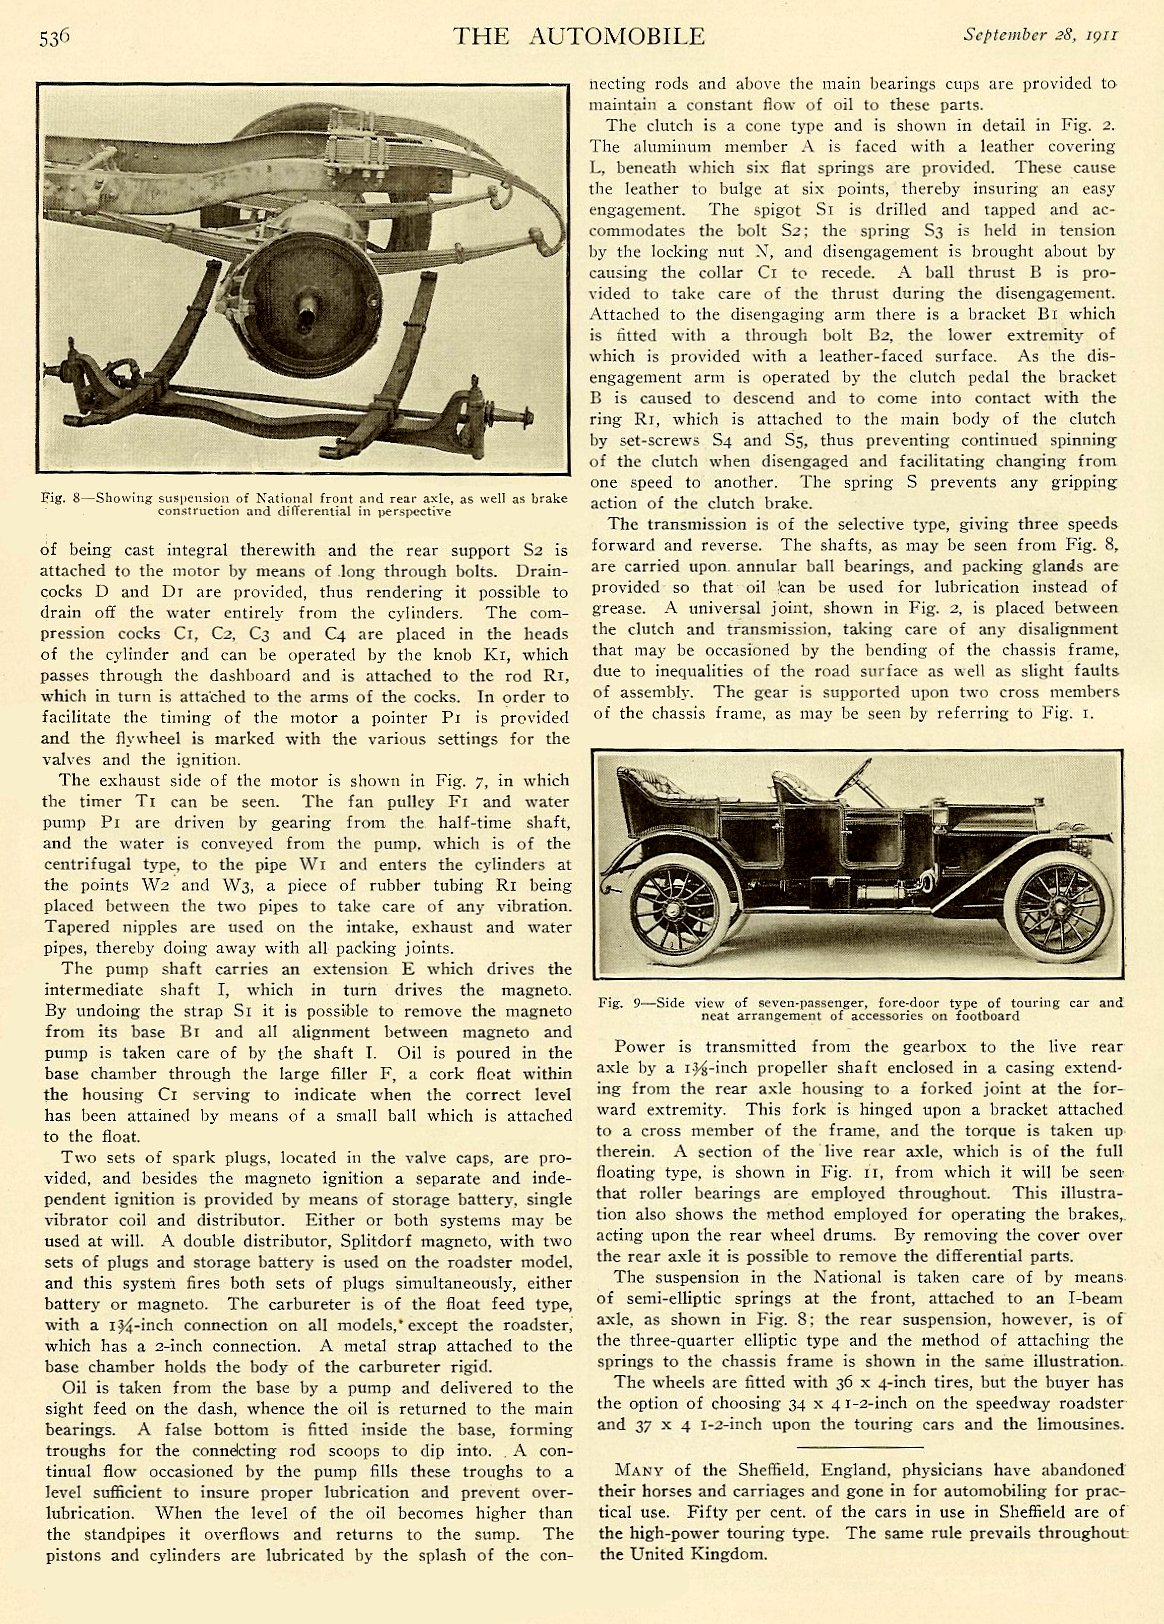 """1911 9 28 National """"Details of National Construction"""" THE AUTOMOBILE Vol. 25 No. 13 September 28, 1911 9″x12″ page 536"""